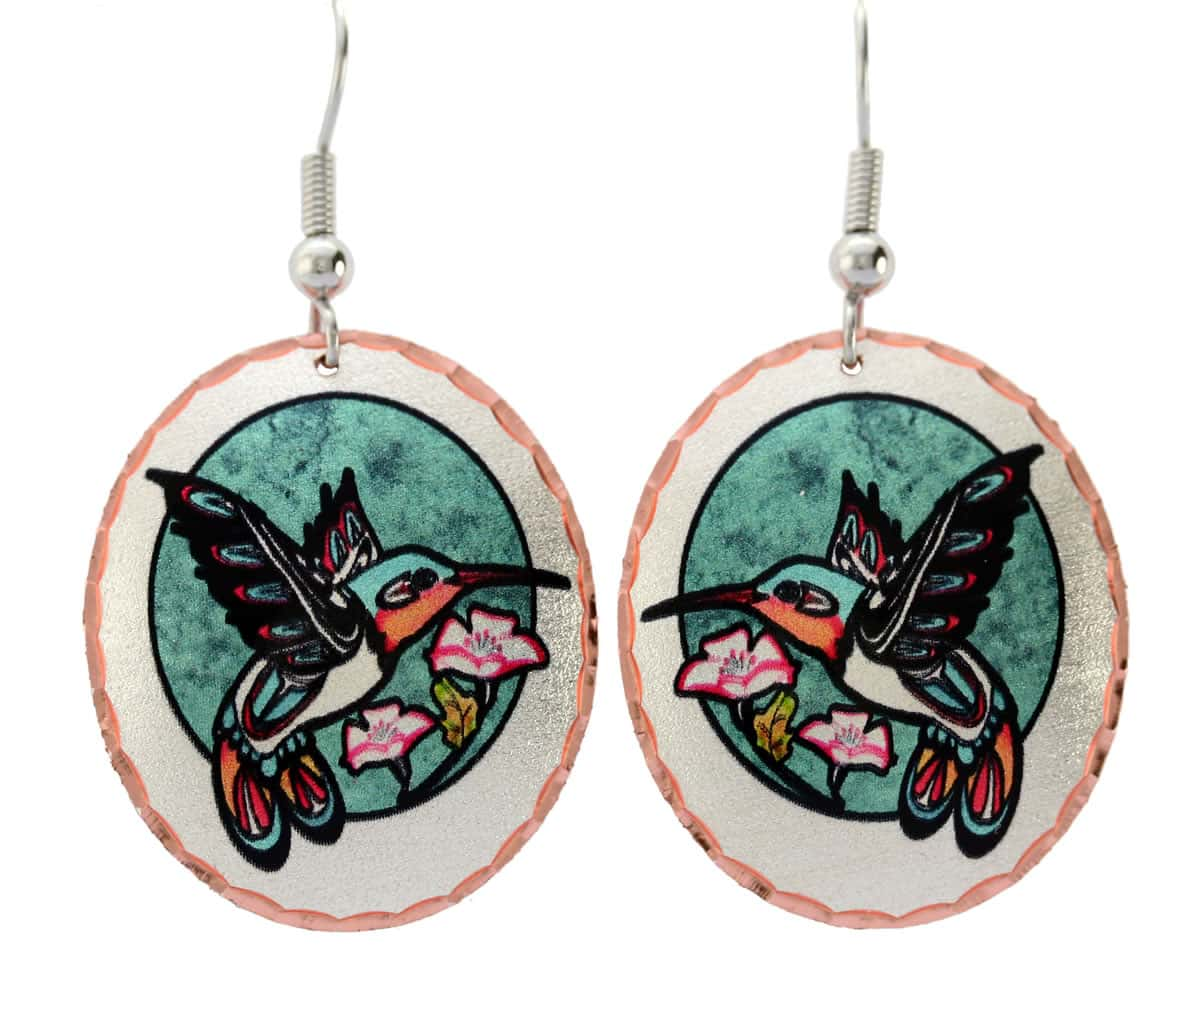 Buy Northwest Native hummingbird earrings that will make you feeling attractive